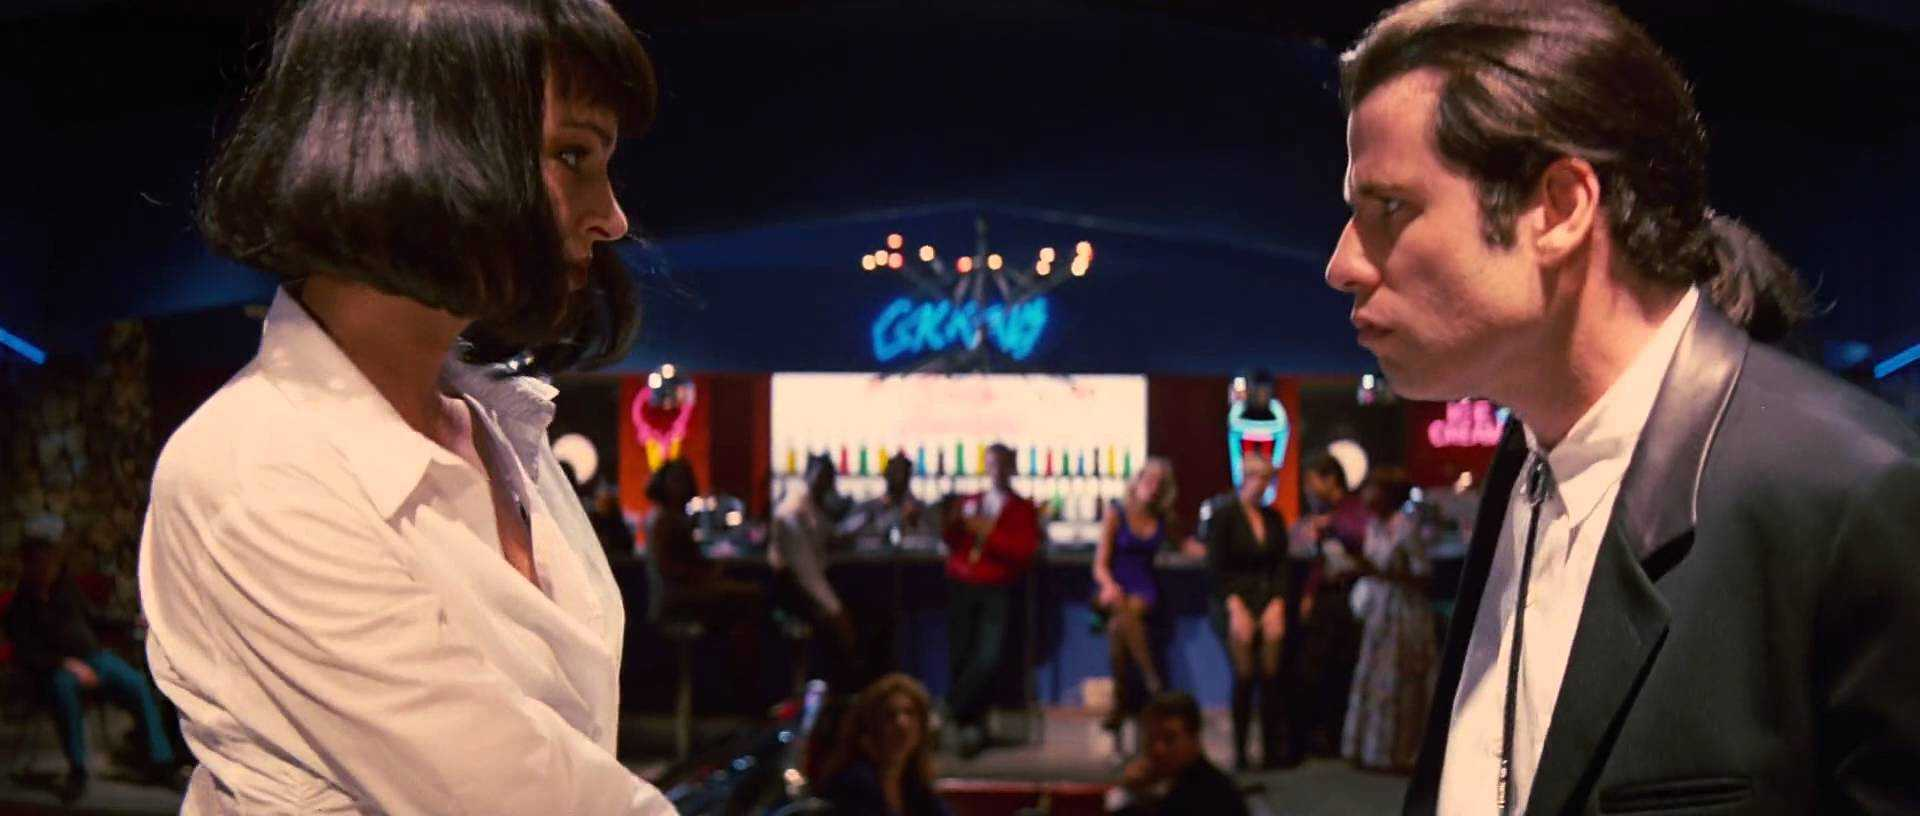 Uma Thurman and John Travolta star as Mia Wallace and Vincent Vega in Quentin Tarantino's Pulp Fiction